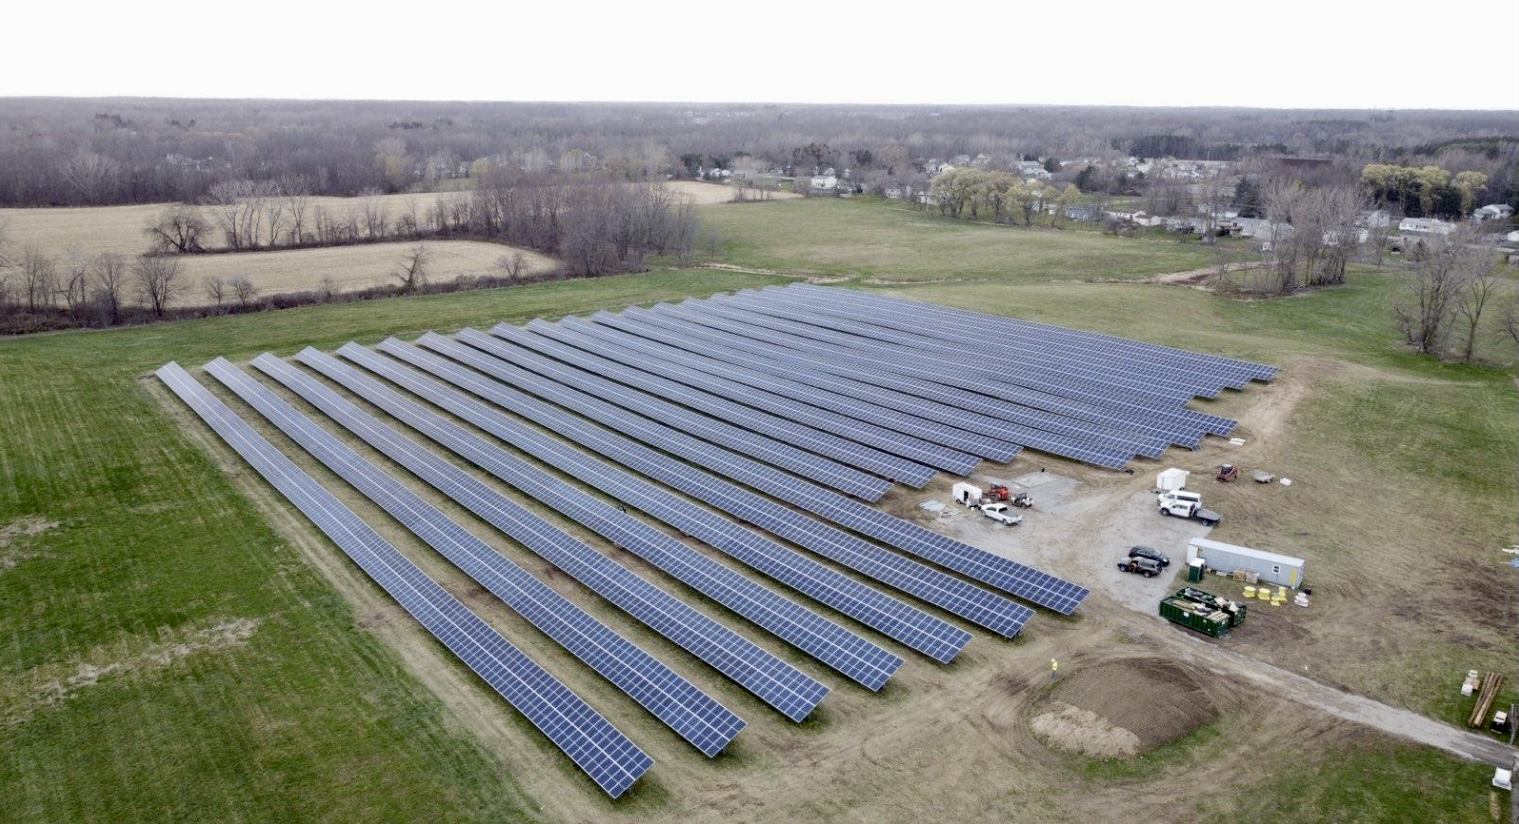 Leenhouts Family and GreenSpark Solar Develop Local Solar Farm